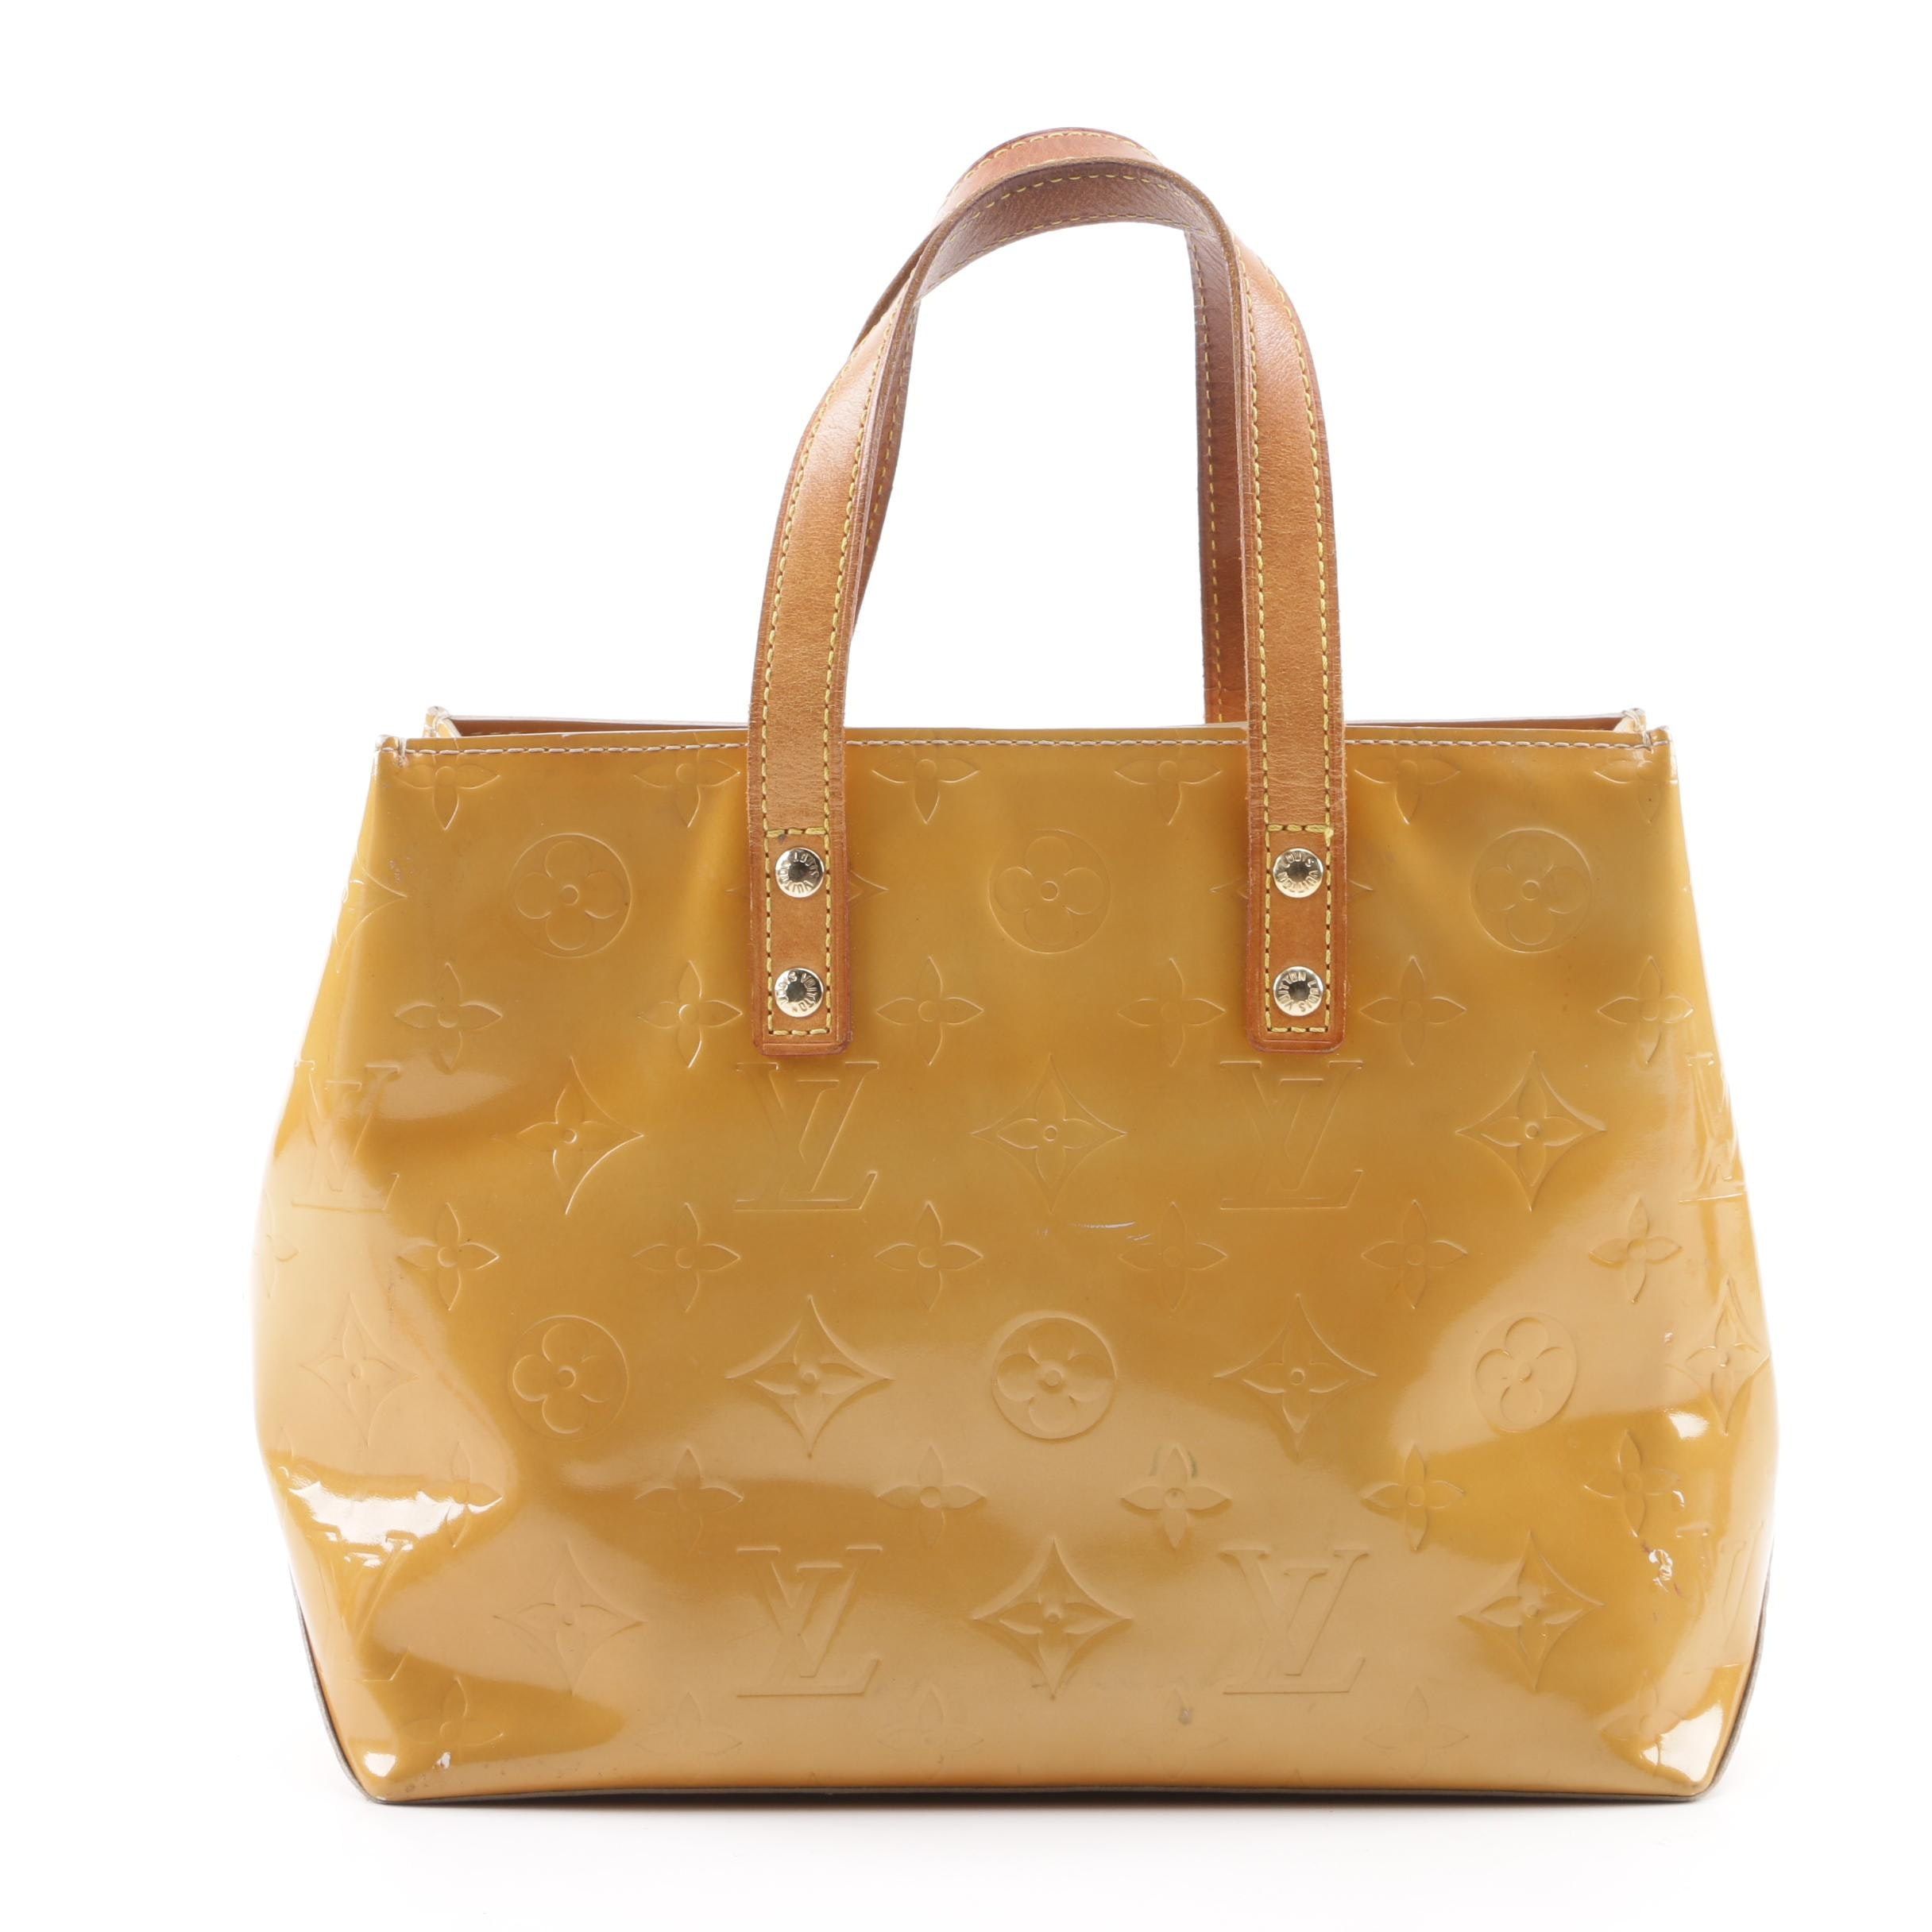 2001 Louis Vuitton Reade PM Mango Vernis Leather Tote Handbag